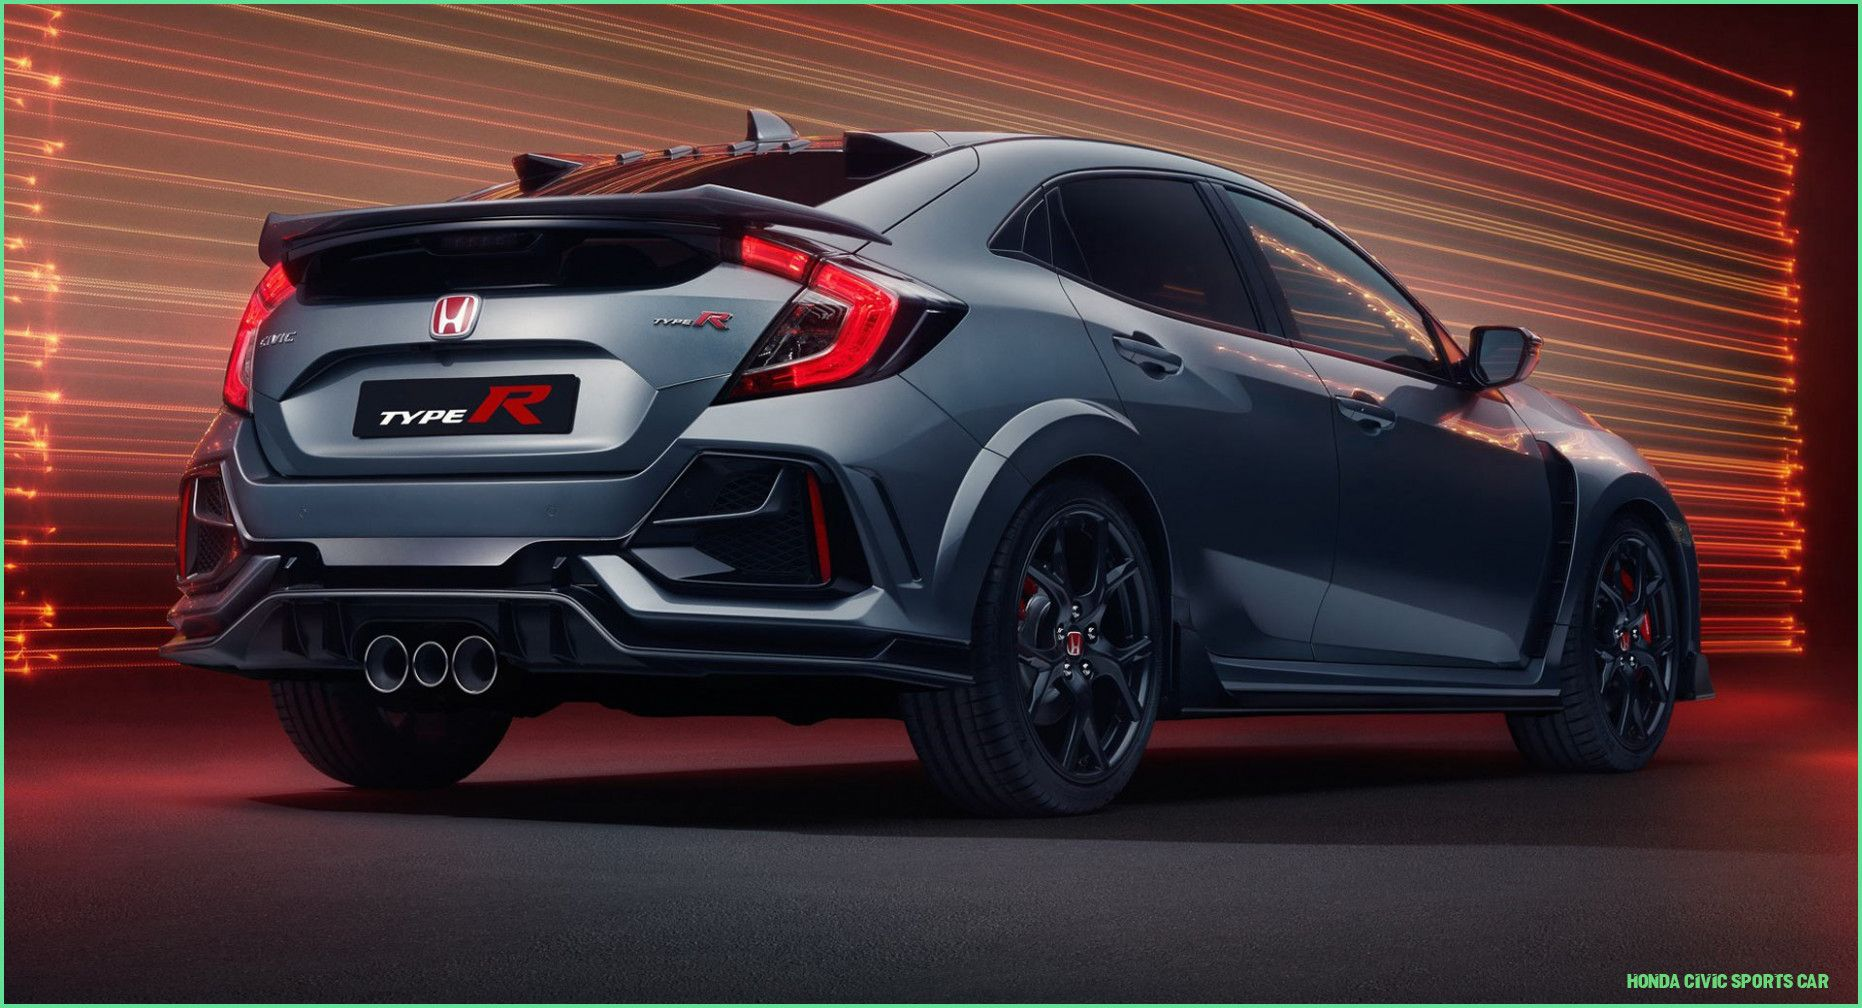 Top Seven Trends In Honda Civic Sports Car To Watch